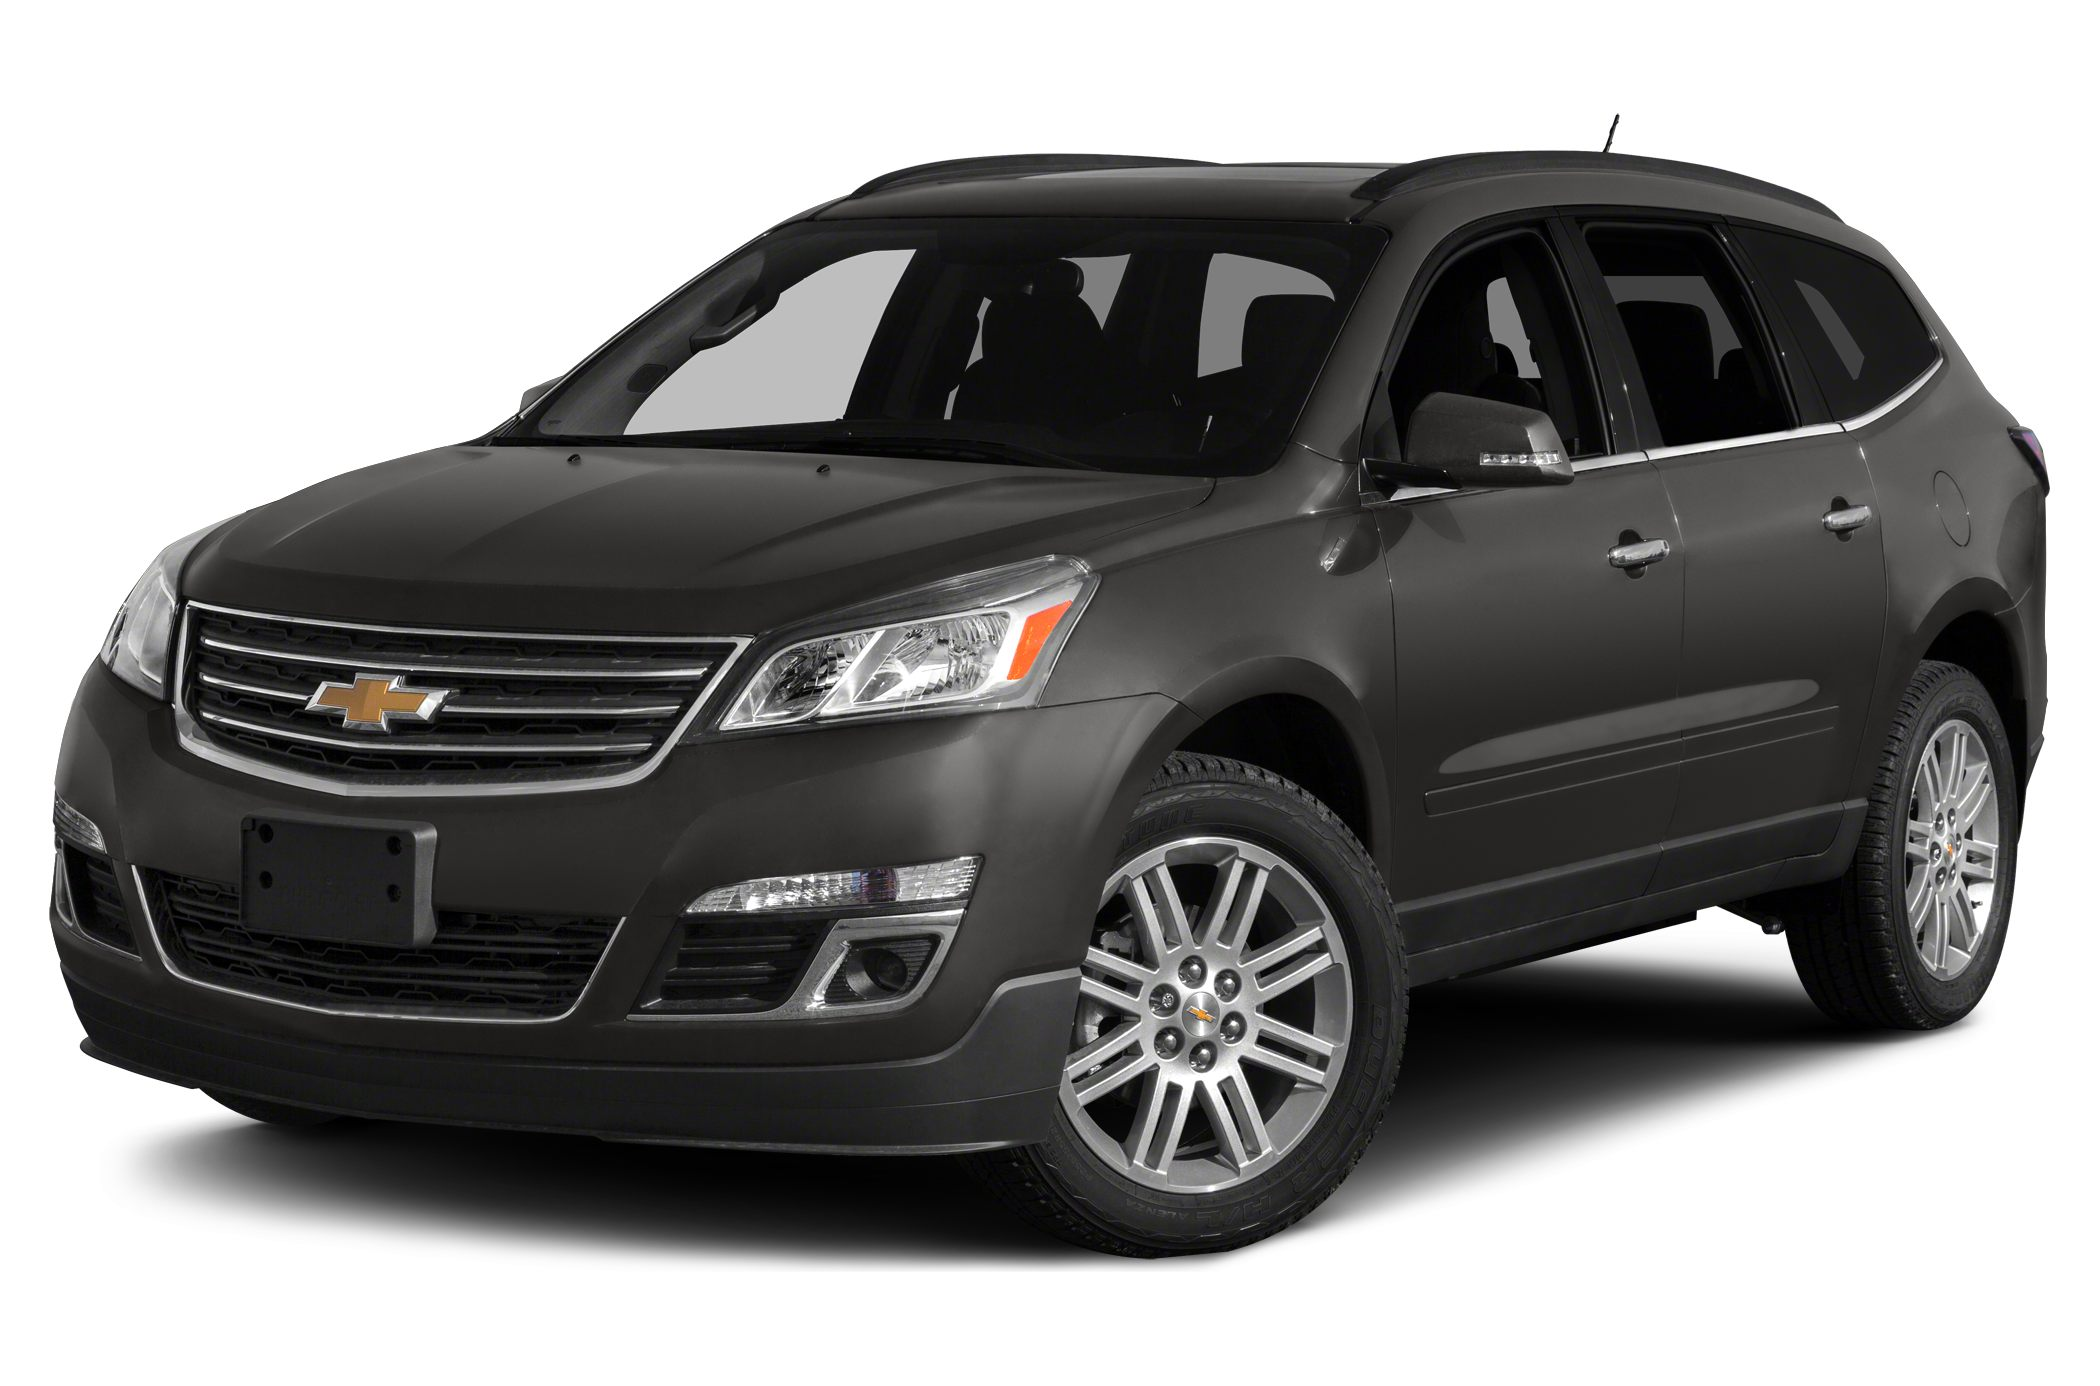 2015 Chevrolet Traverse 2LT SUV for sale in Westminster for $42,330 with 8 miles